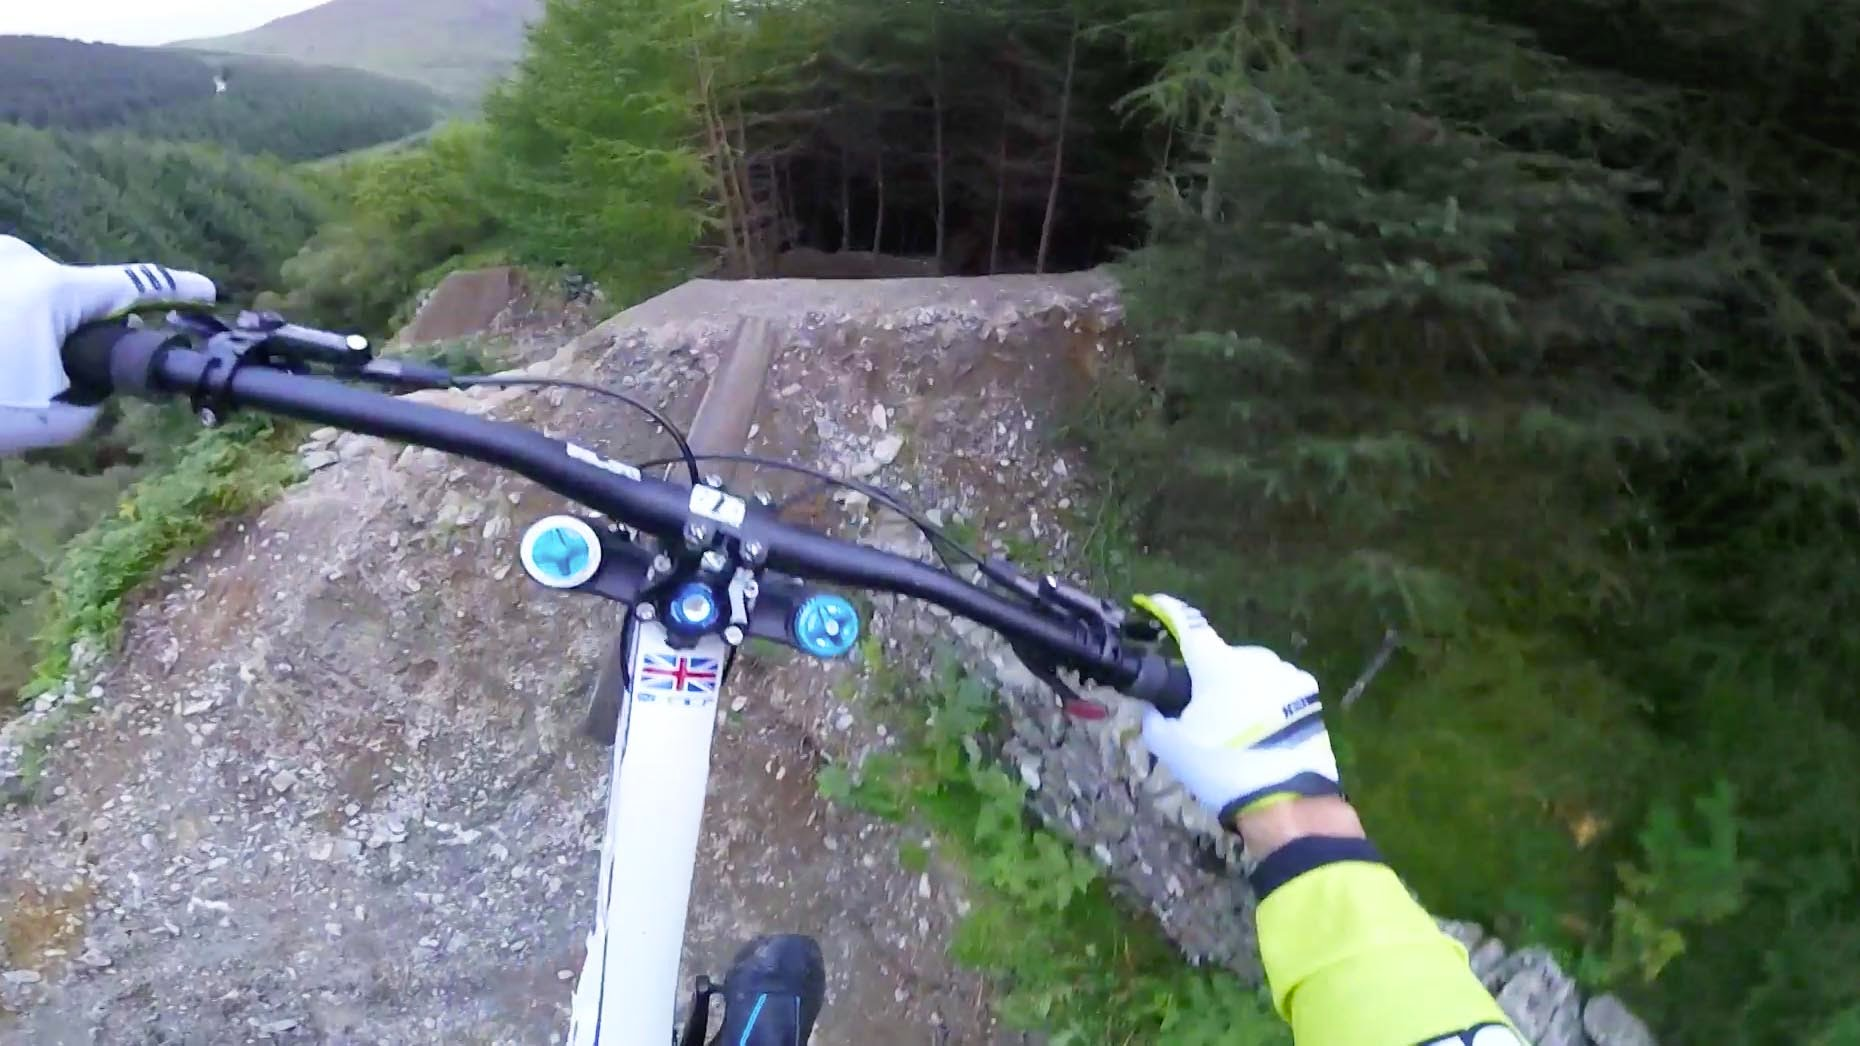 Gee Atherton Speeds Through an Insane Downhill Mountain Biking Trail While Flying Over Road Gaps & Tight Wooded Areas